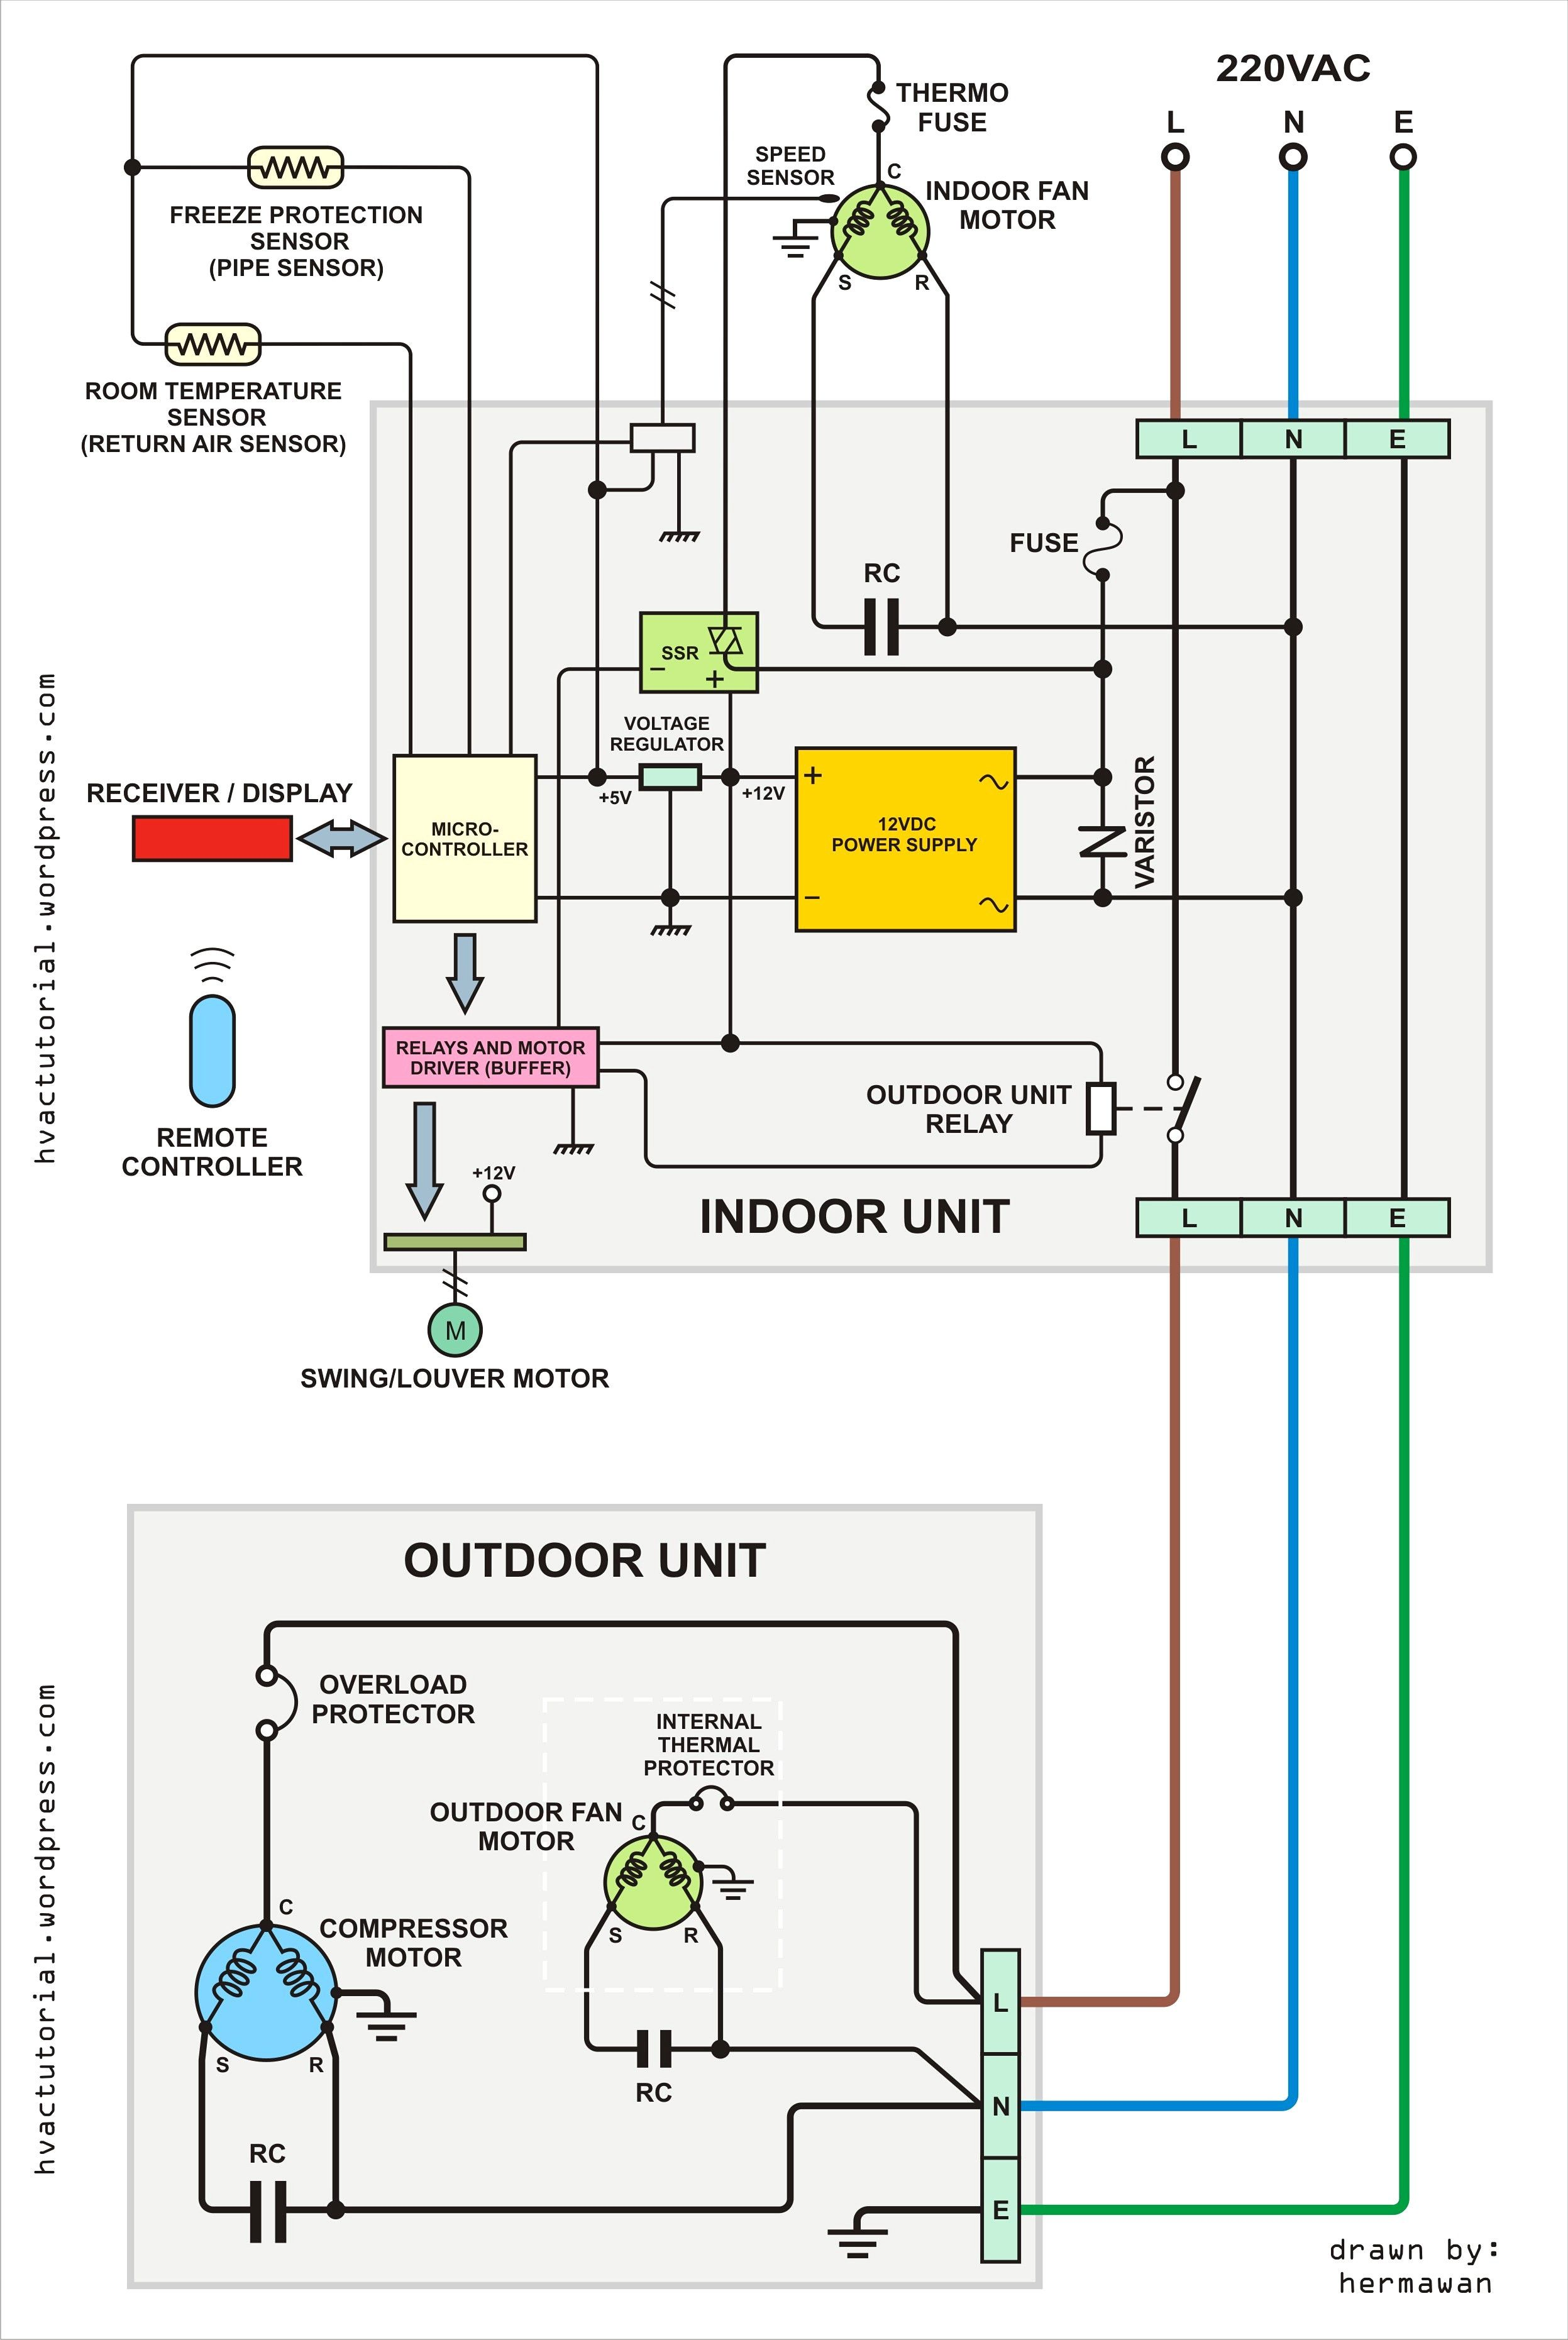 New Air Conditioning Split Unit Wiring Diagram Mercury